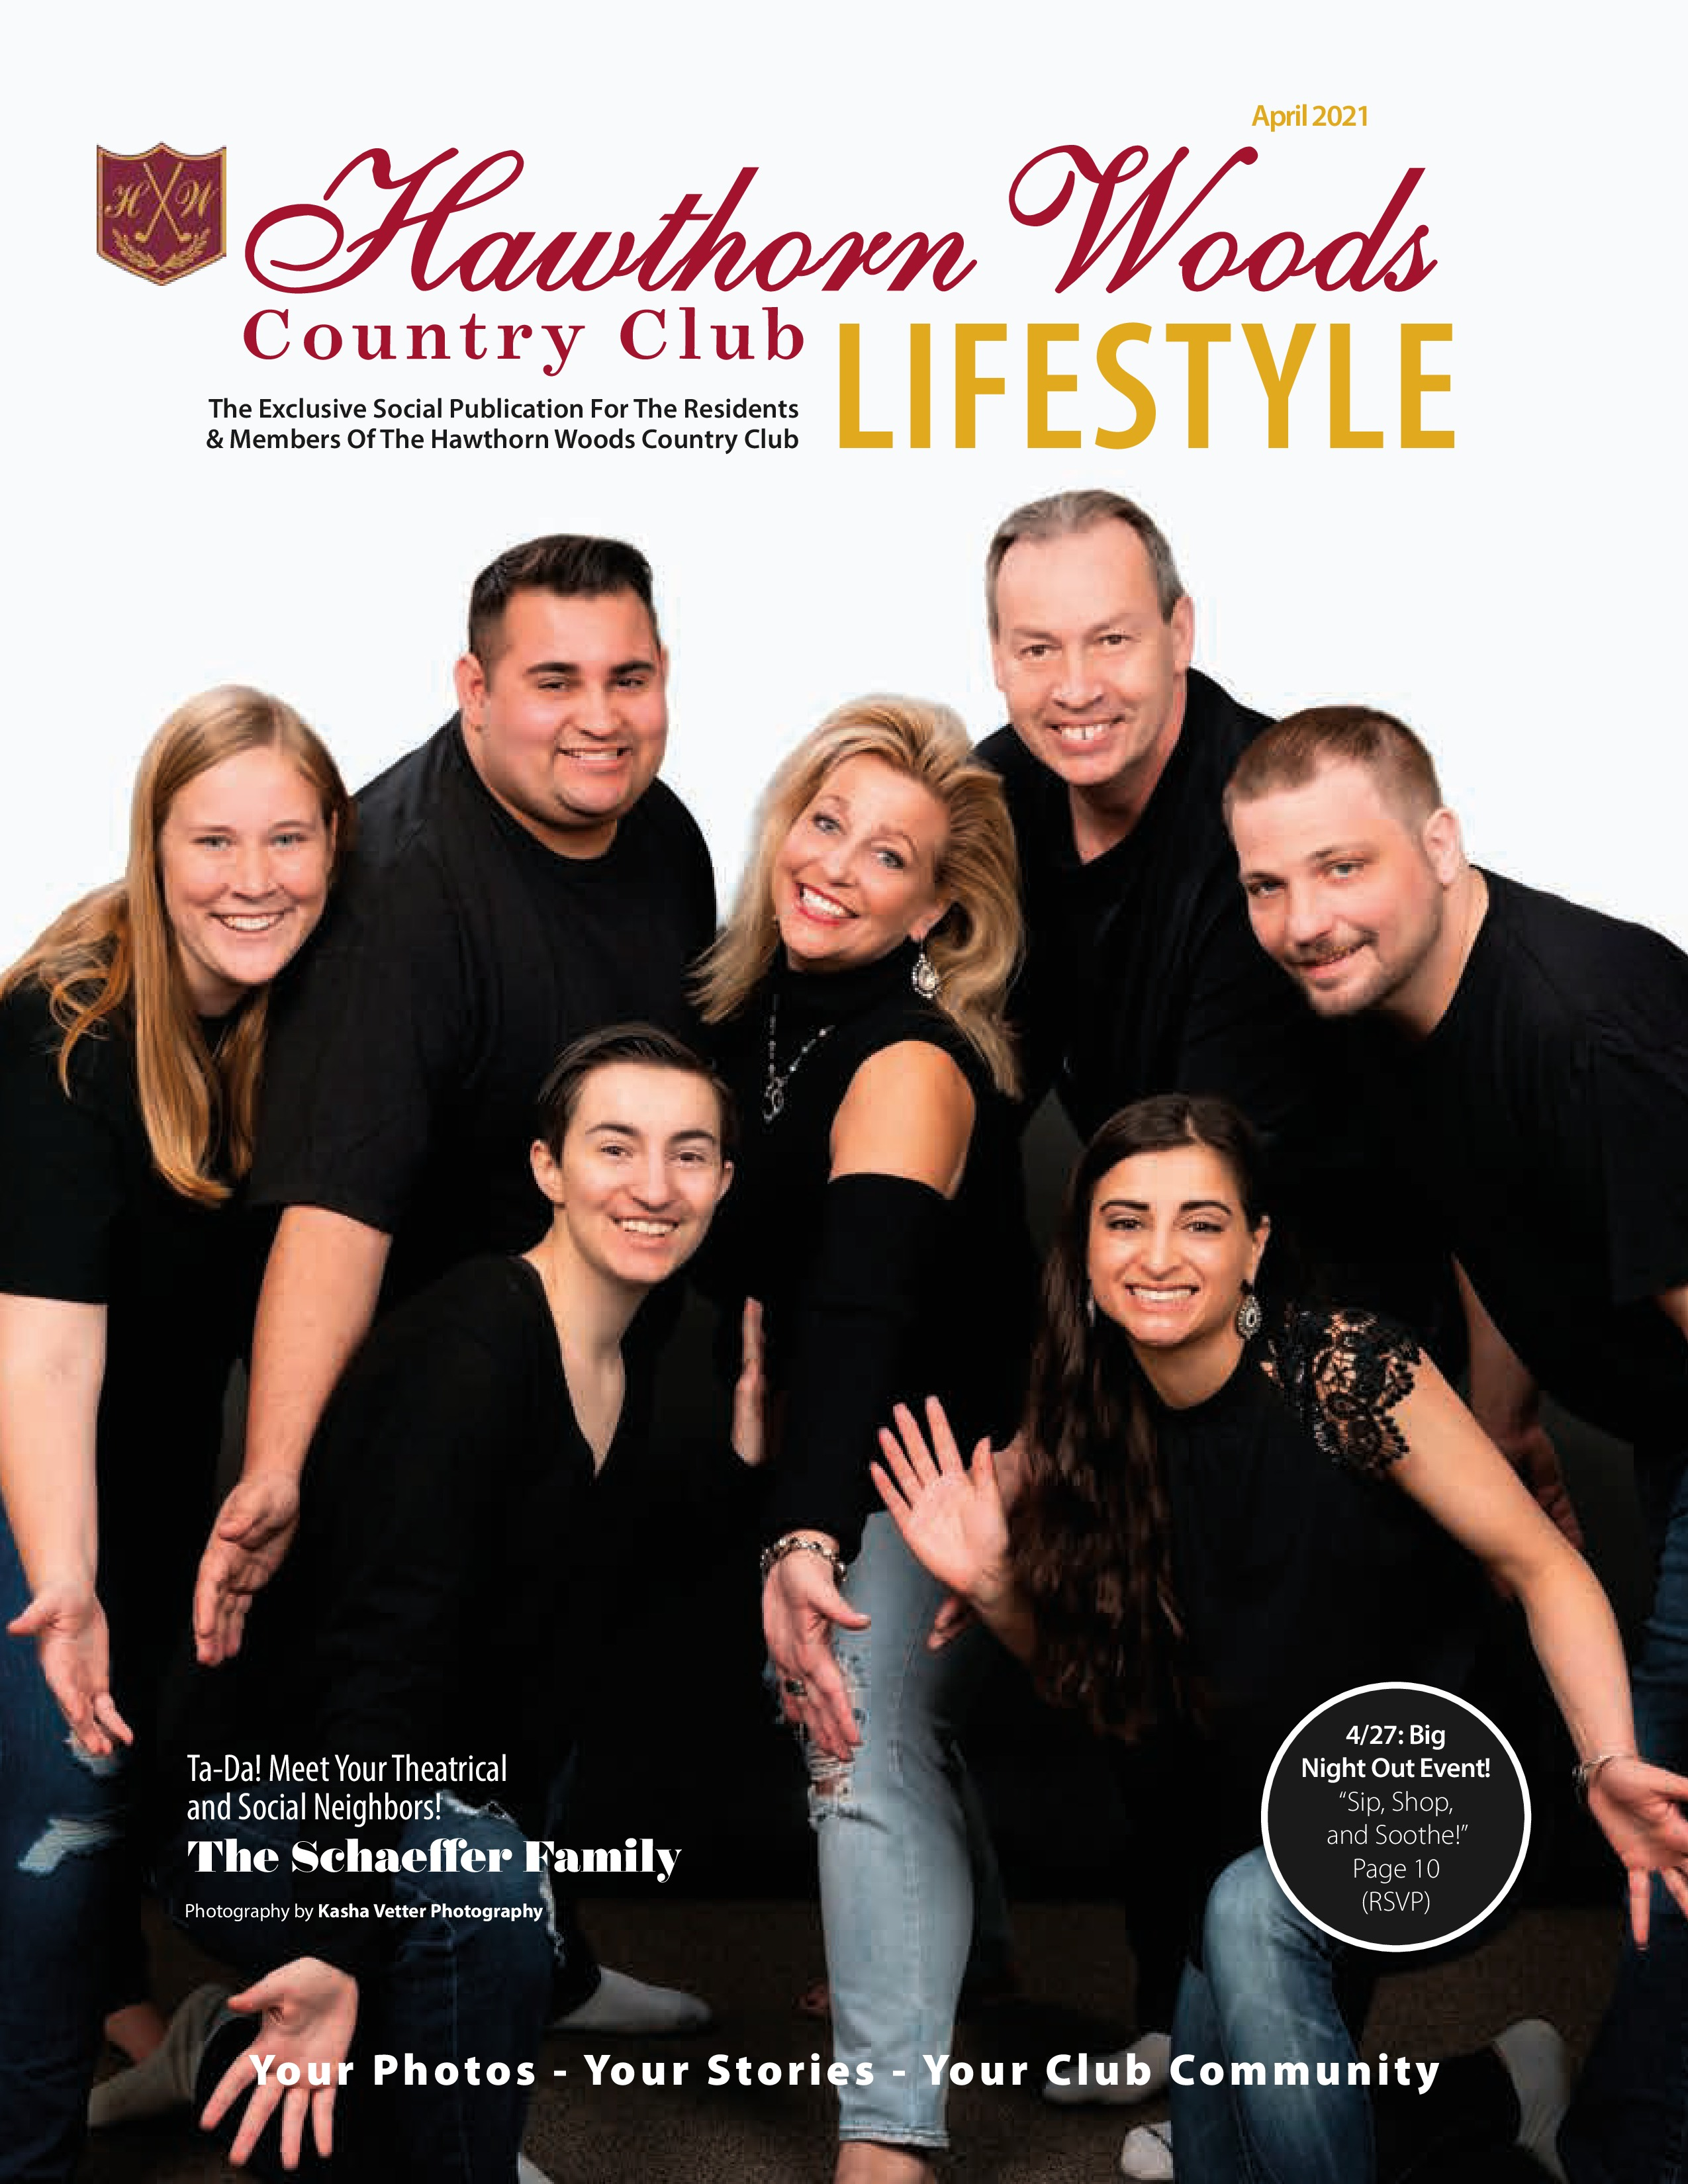 Hawthorn Woods Country Club LIFESTYLE 2021-04-01